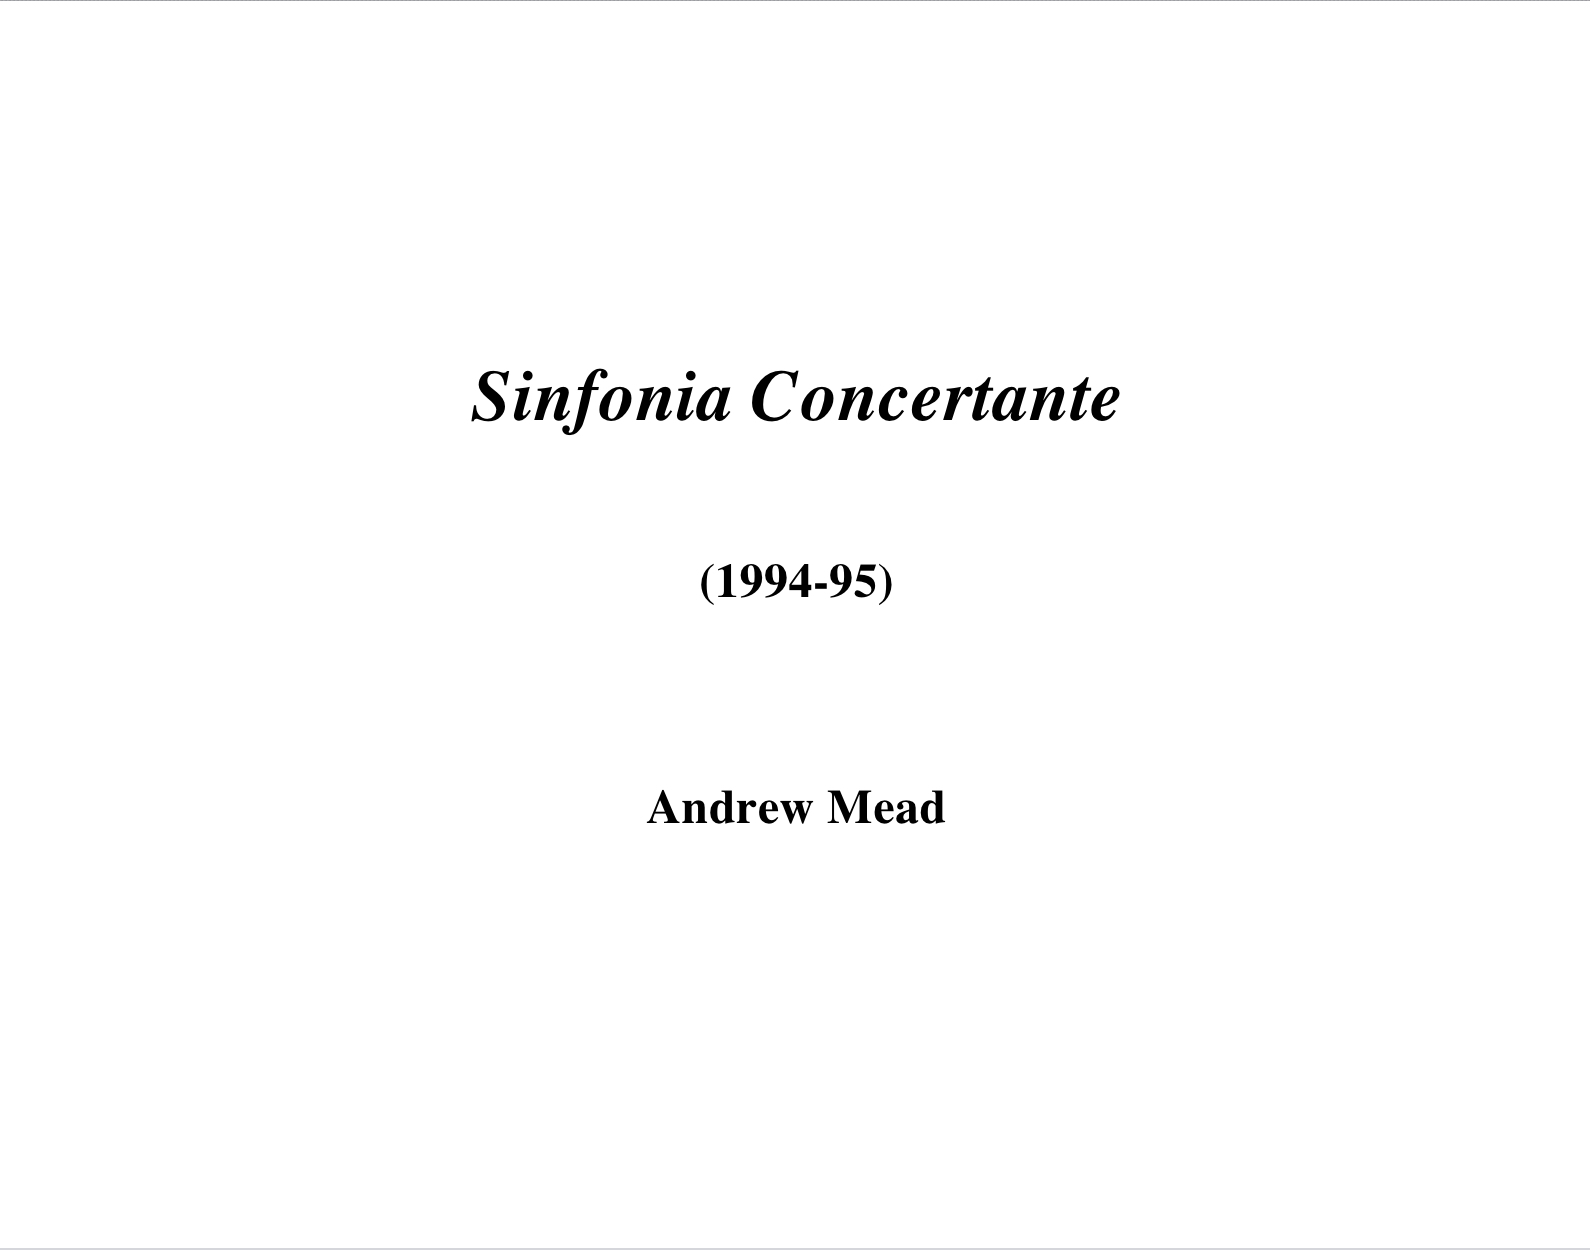 Sinfonia Concertante by Andrew Mead